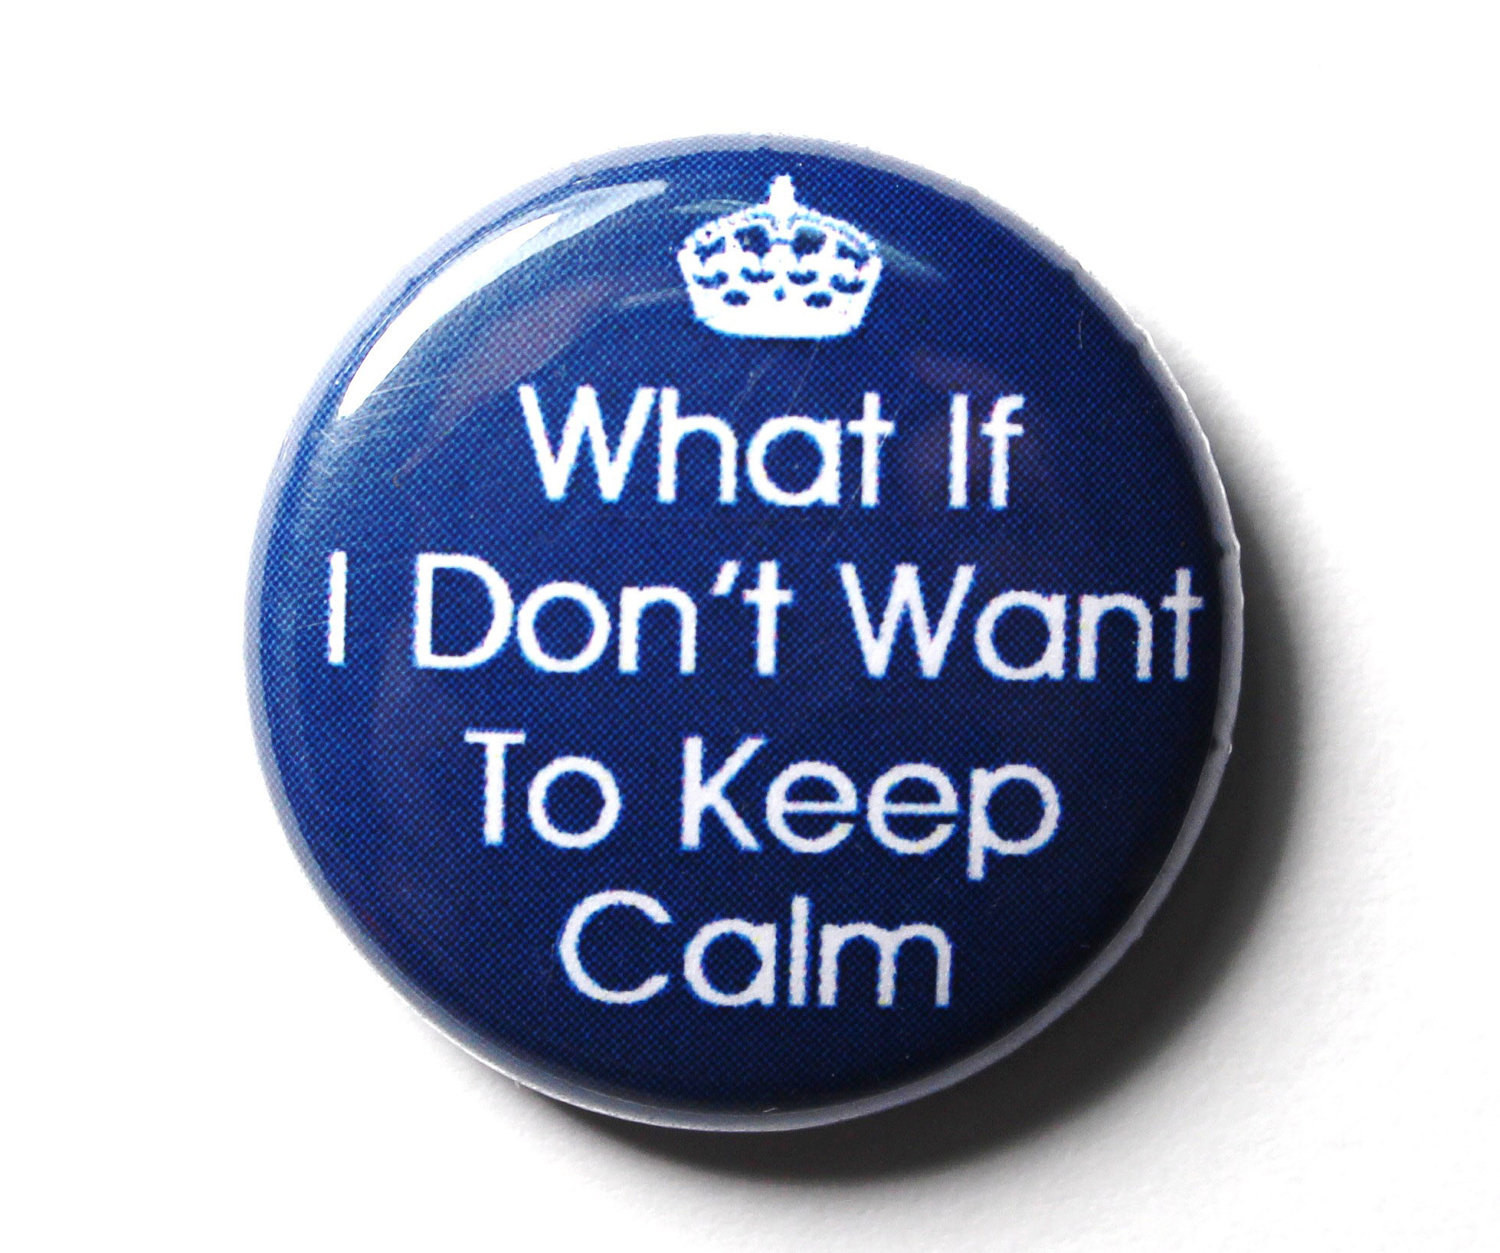 Funny Pins  Don t Keep Calm Funny Blue Button PIN or MAGNET